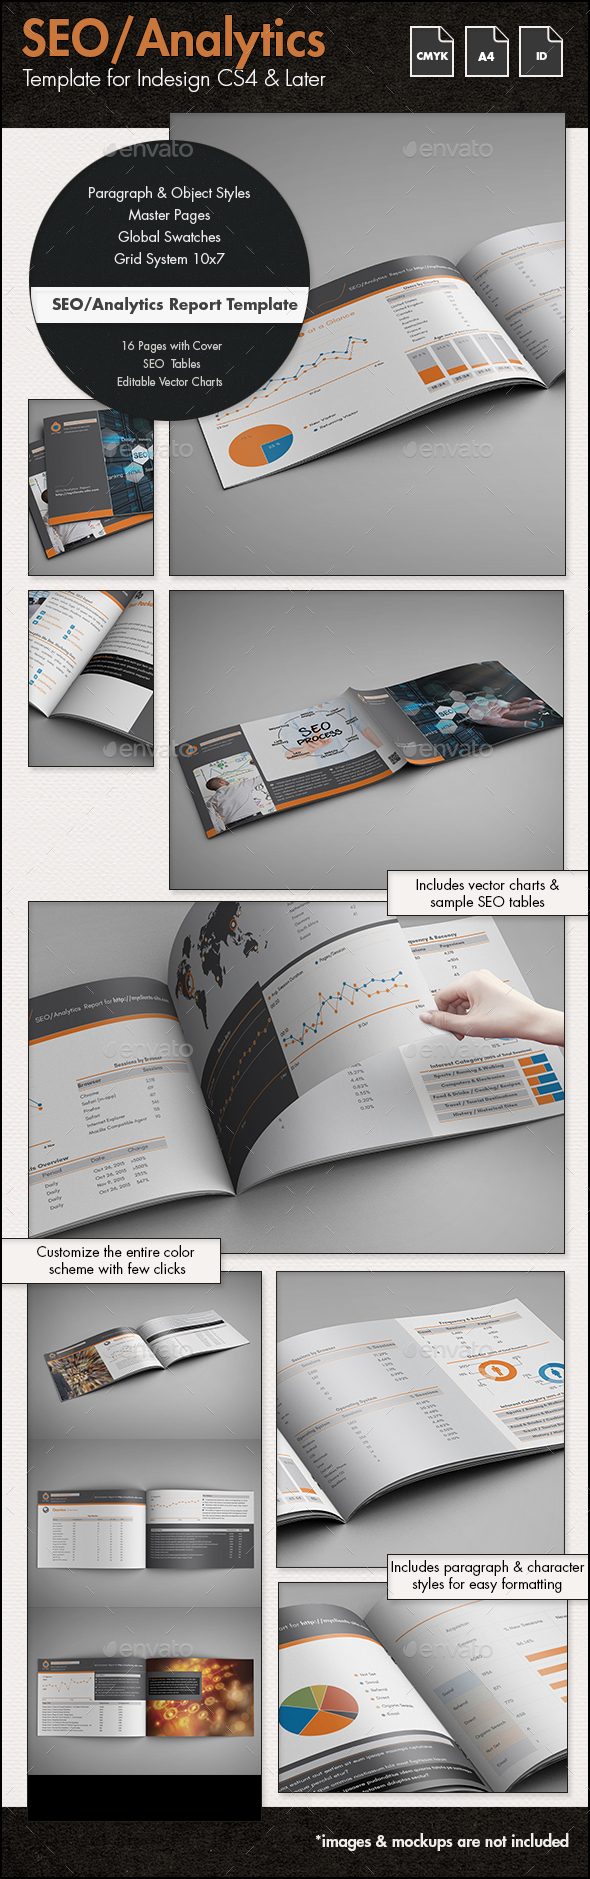 SEO Report / Proposal Template - A4 Landscape - Proposals & Invoices Stationery